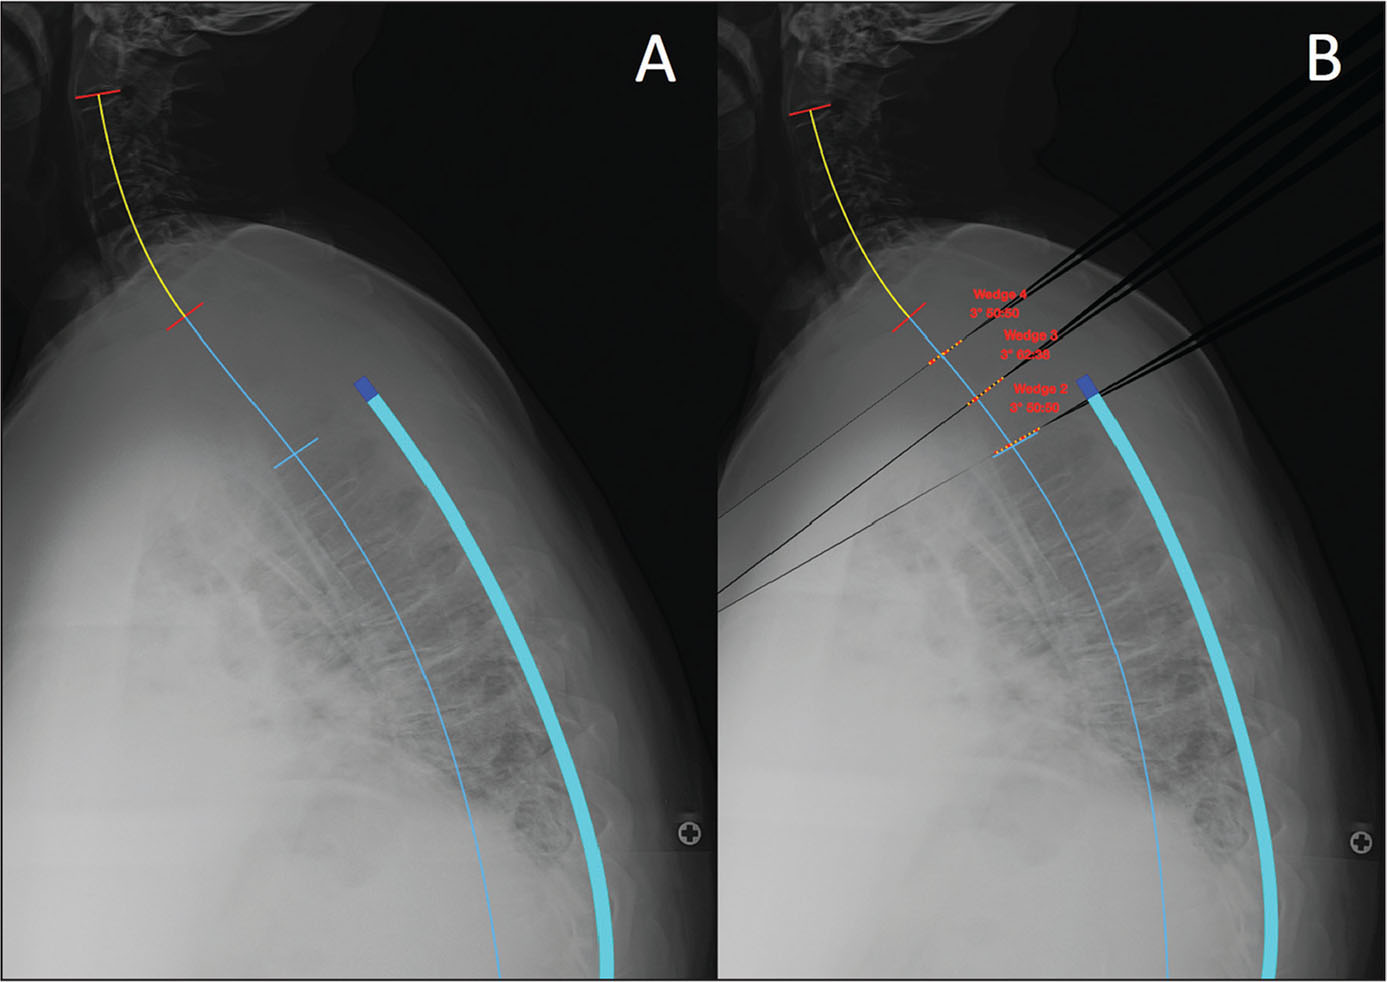 Planning for reciprocal kyphosis. Preoperative radiograph (A). Surgical planning imaging with 3 wedges, simulating 3° of reciprocal kyphosis per disk level above the fusion construct (B).